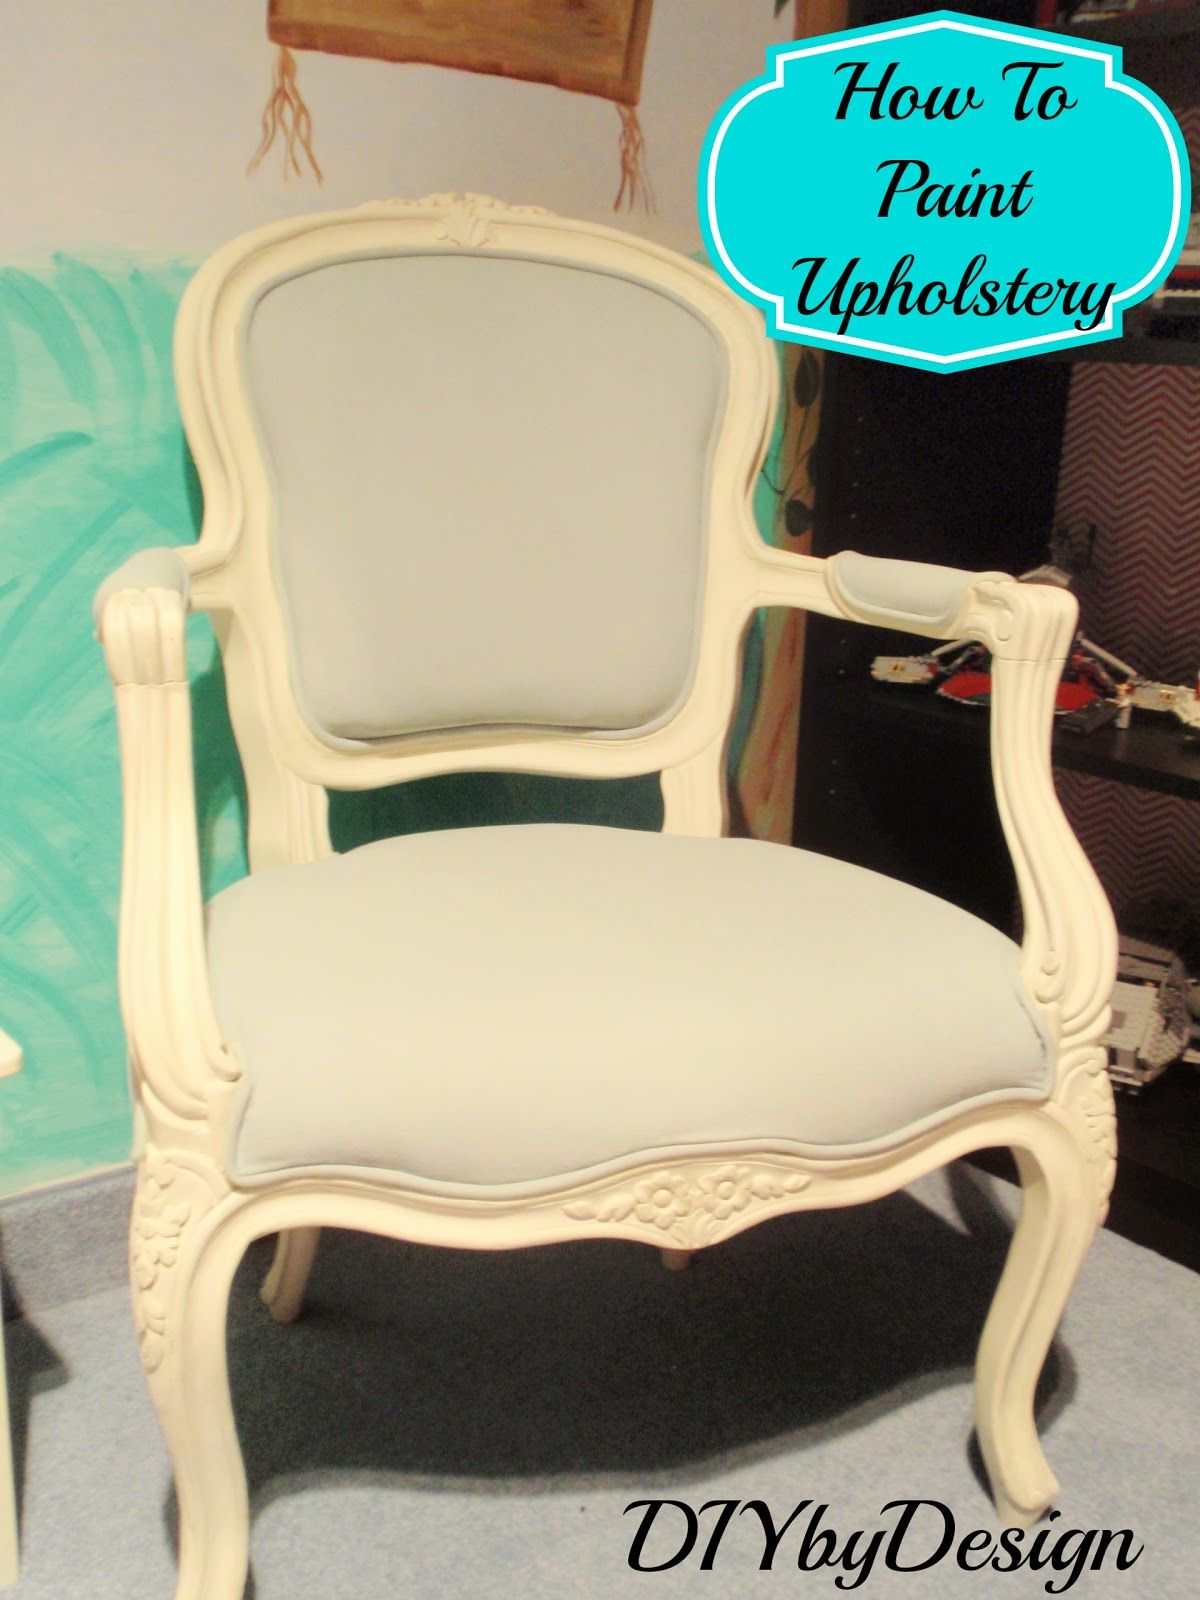 DIY by Design: How to Paint Upholstery